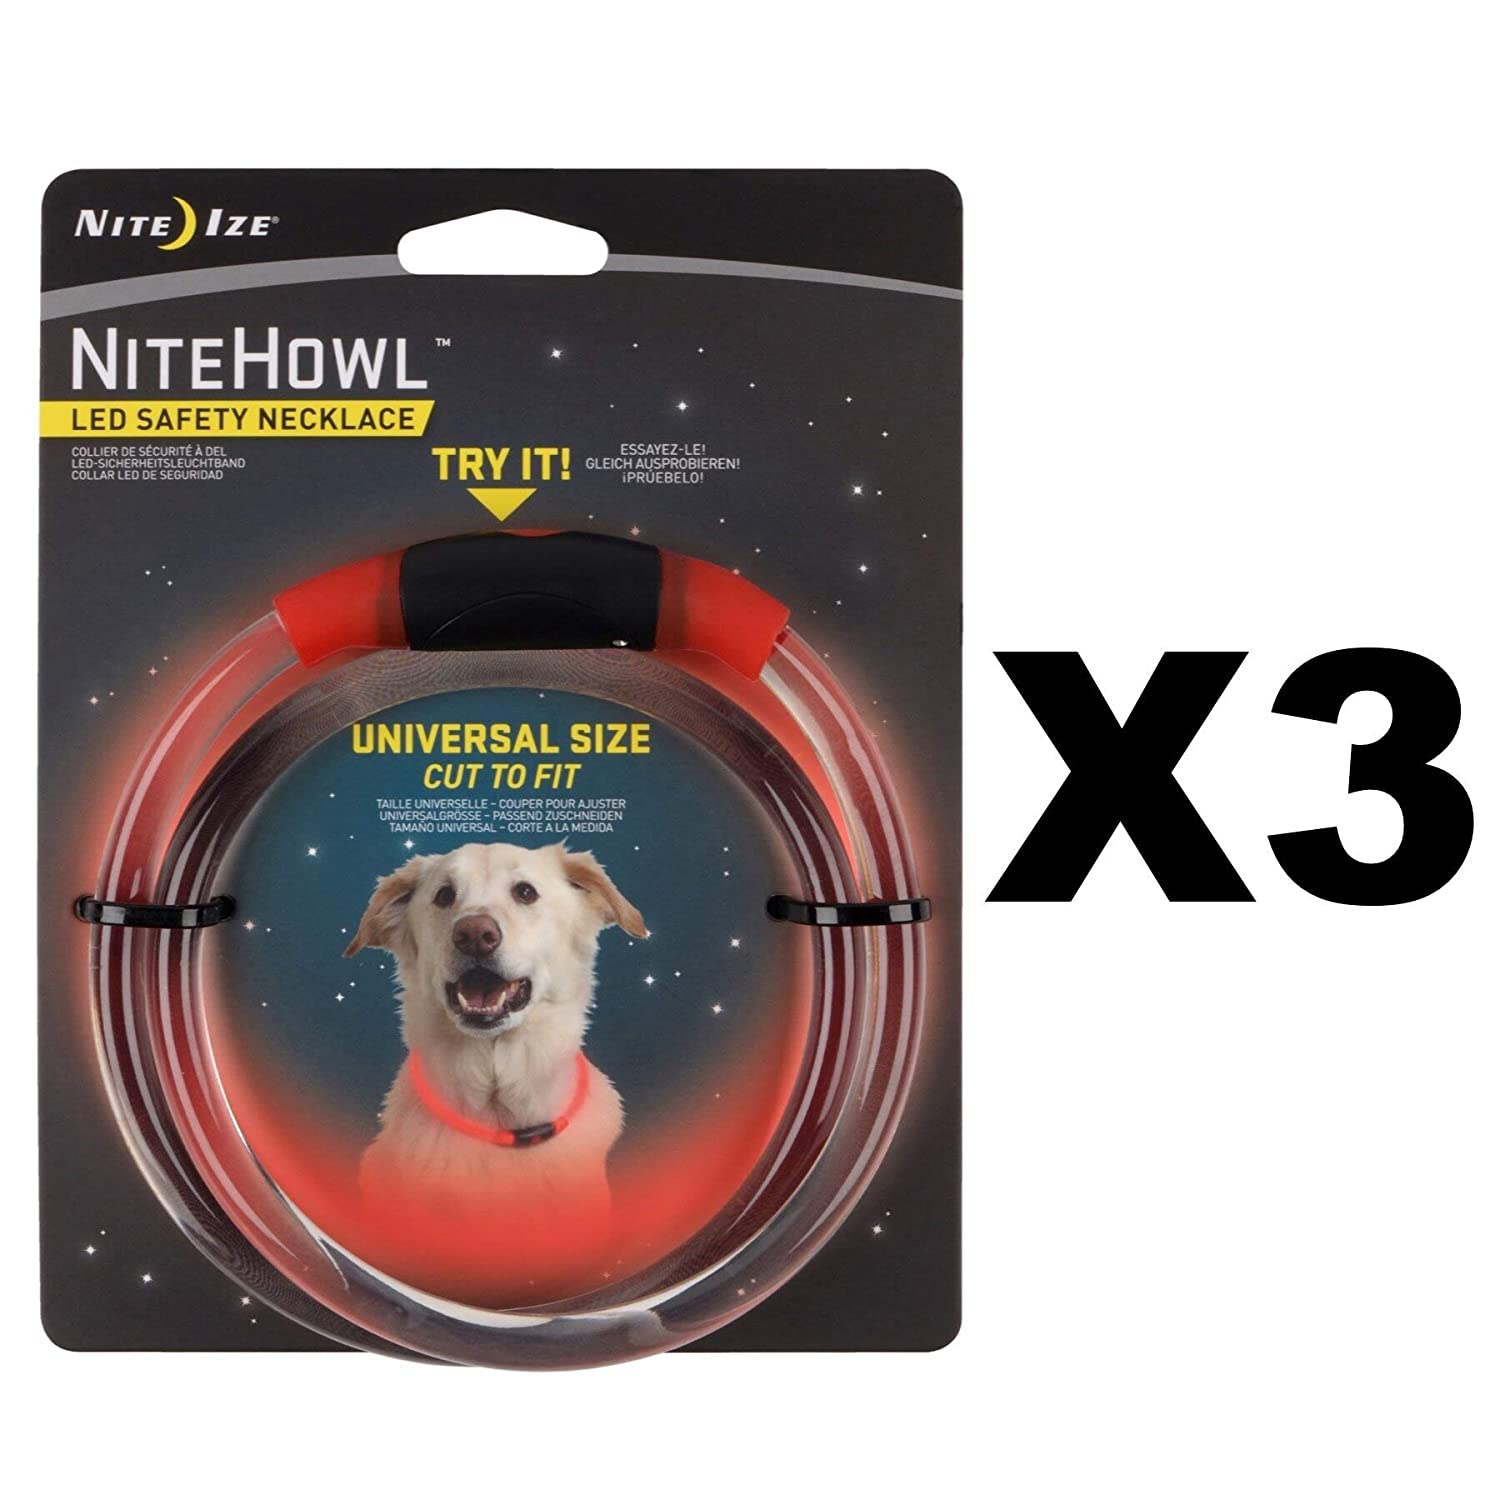 Nite Ize NHO-10-R3 Red NiteHowl LED Pet Safety Necklace